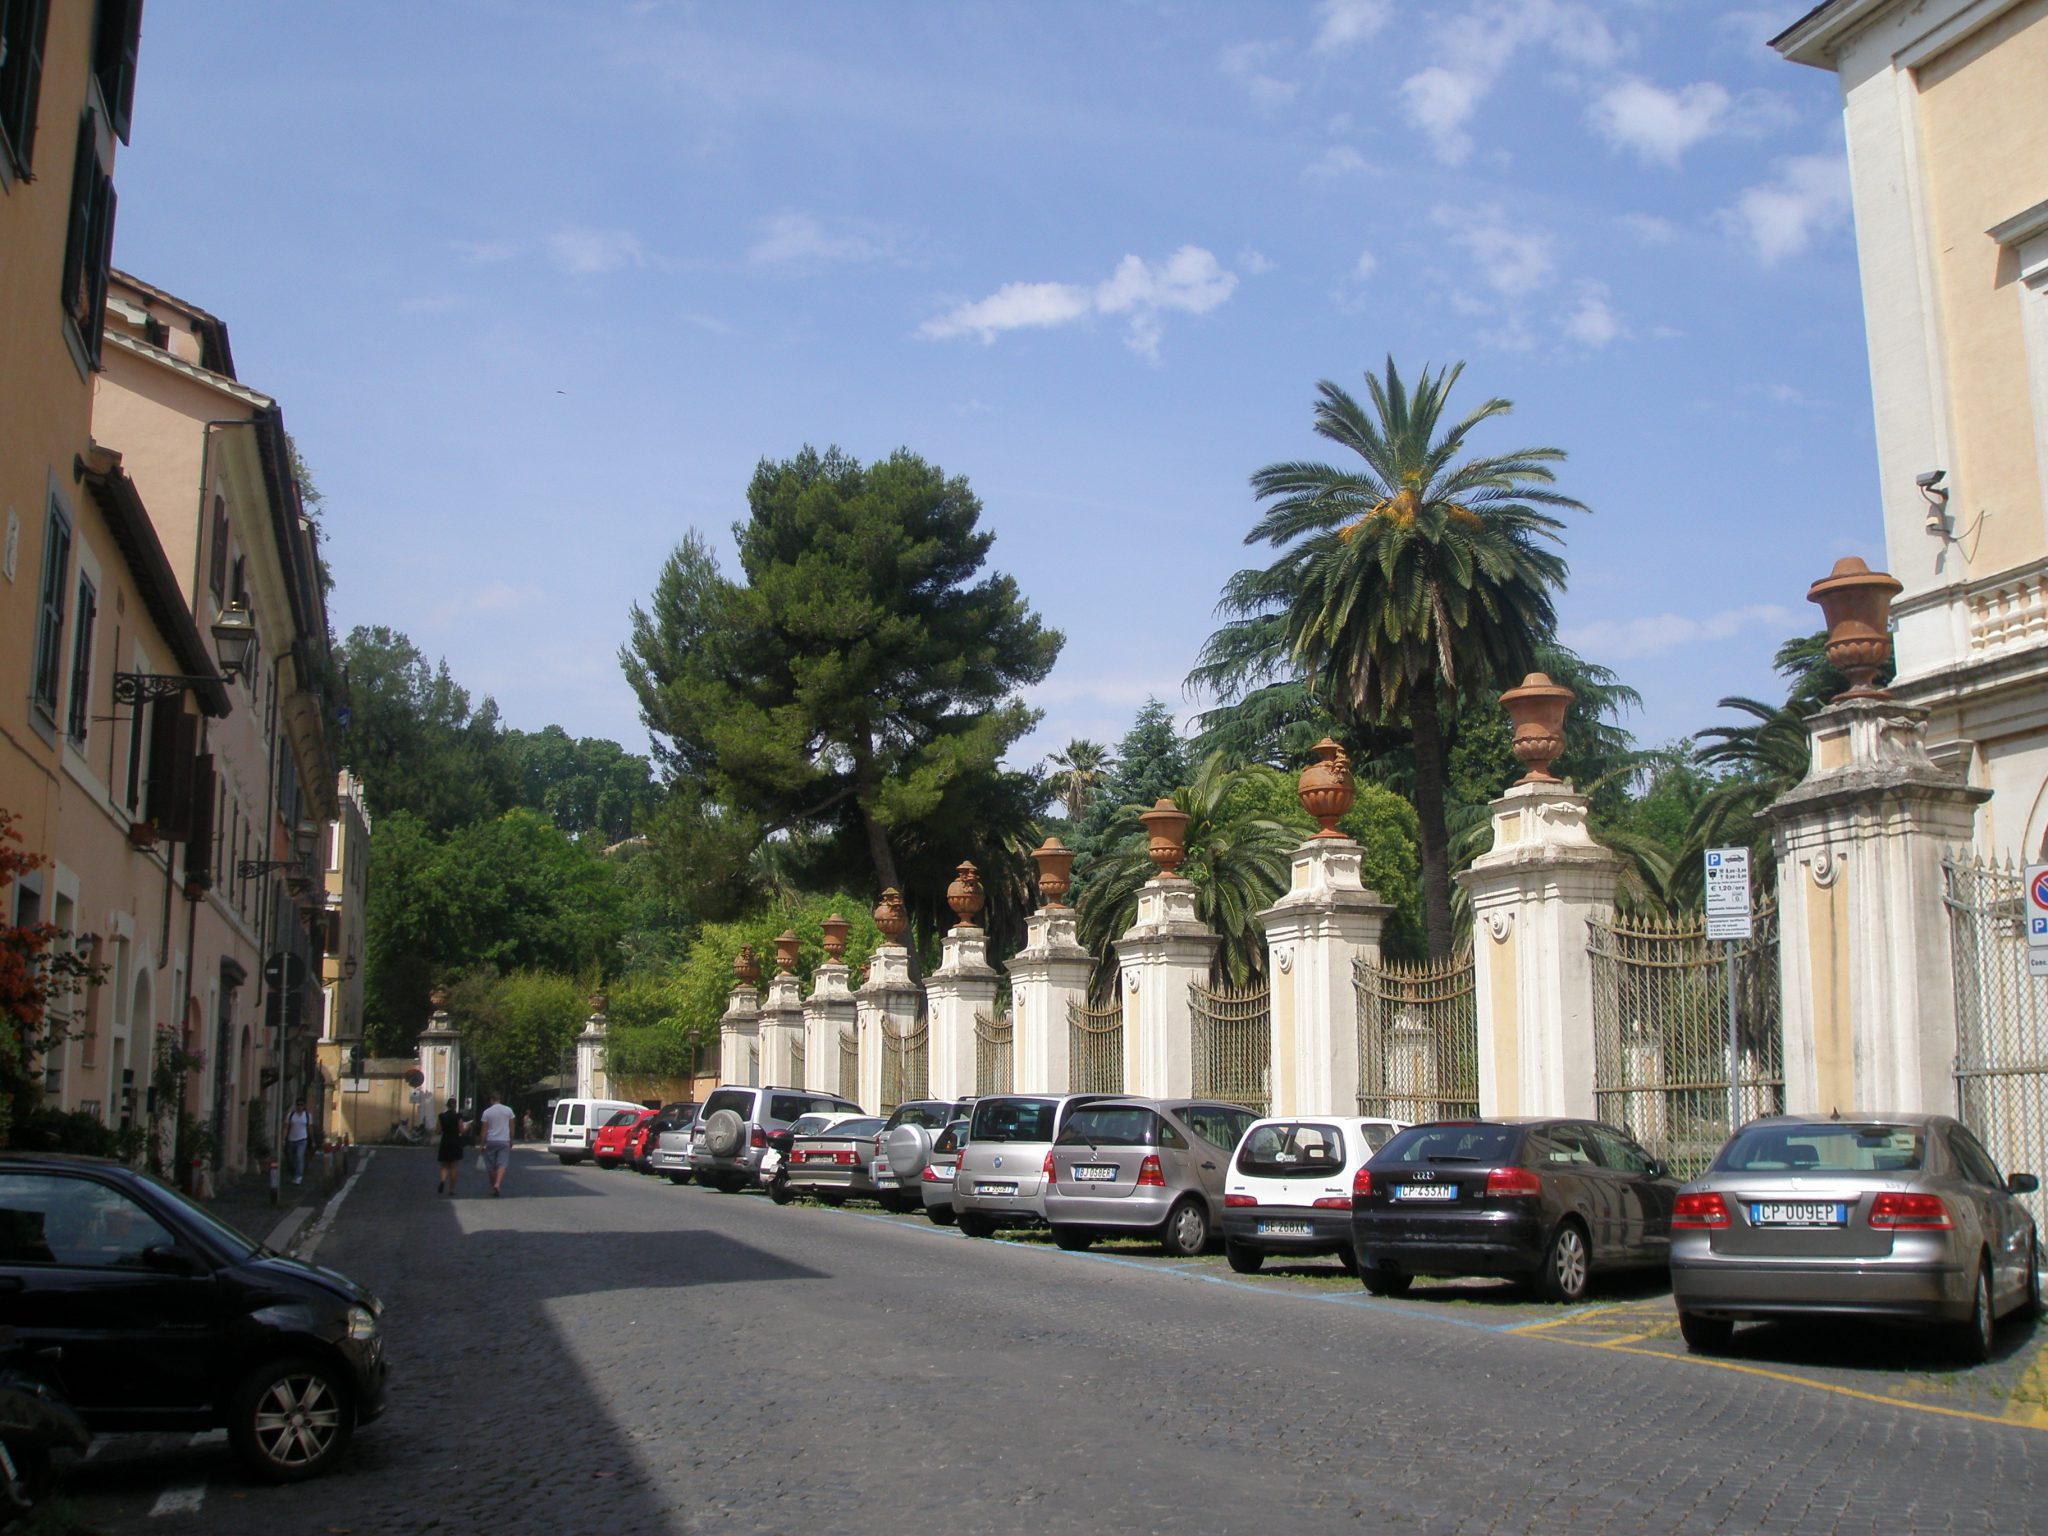 Approaching the Orto Botanico, on Via Corsini